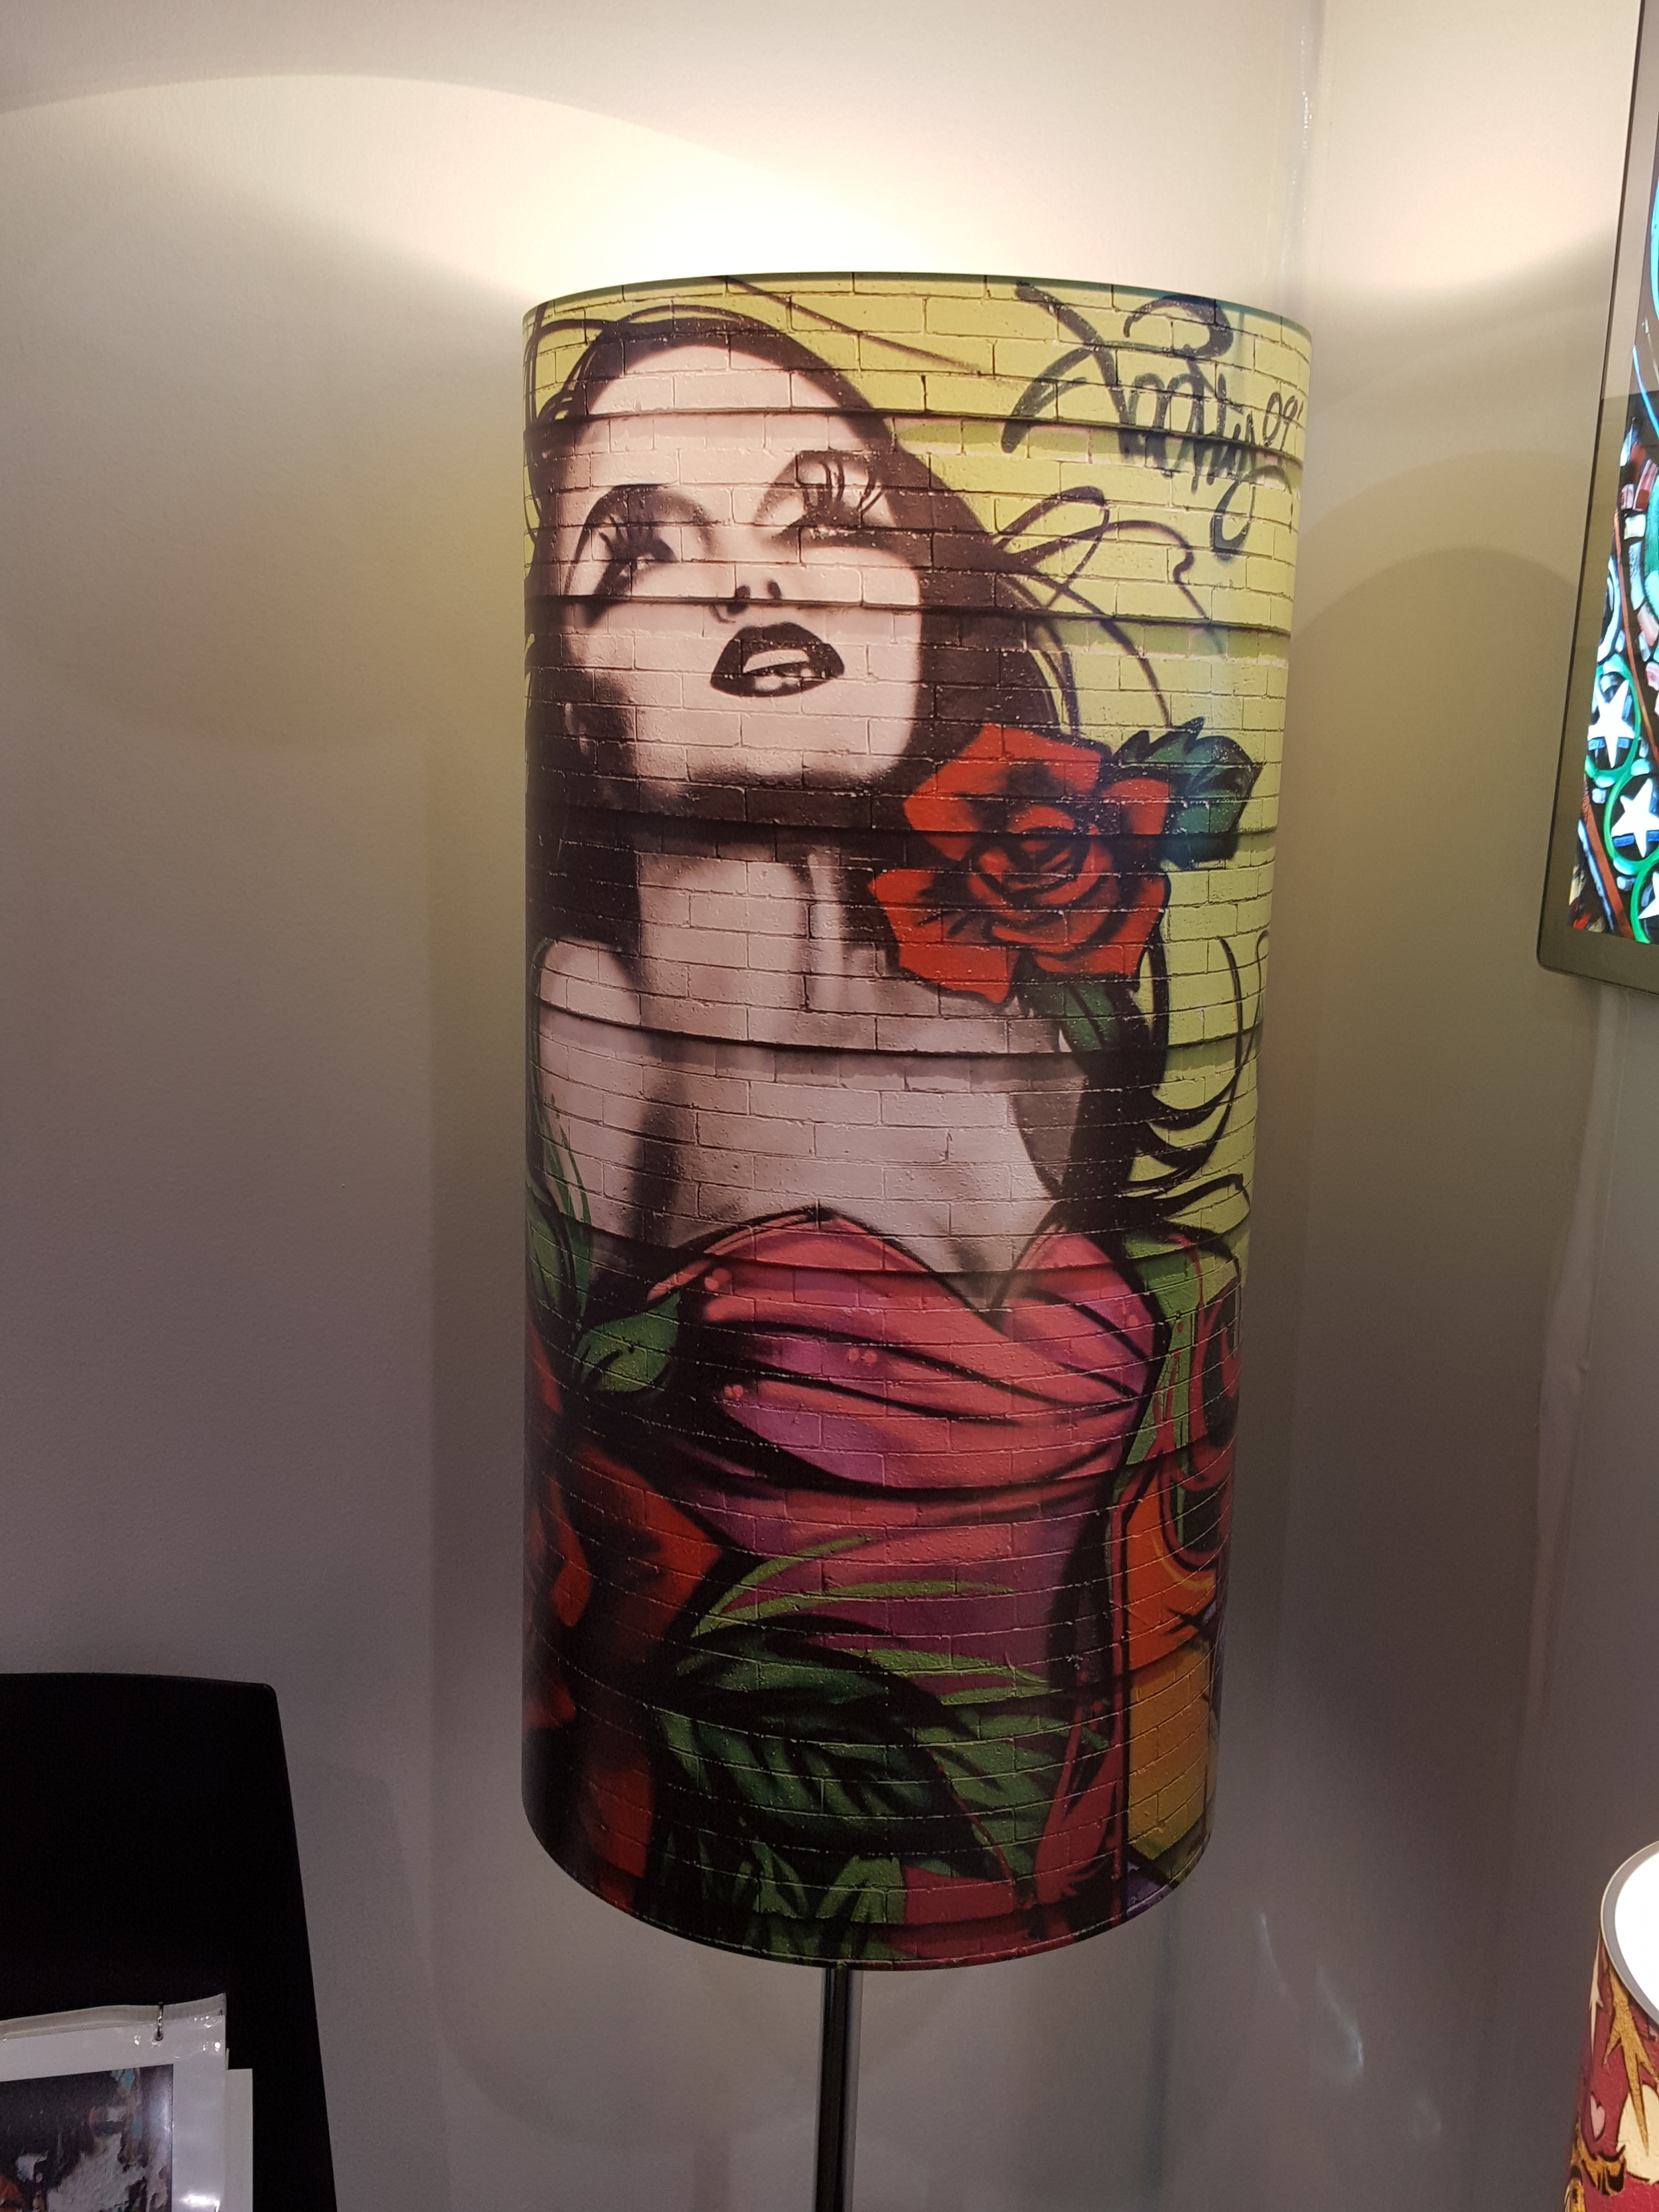 Art 2 Lights - choose your own image, or one of theirs. Street art on a lampshade - brilliant!